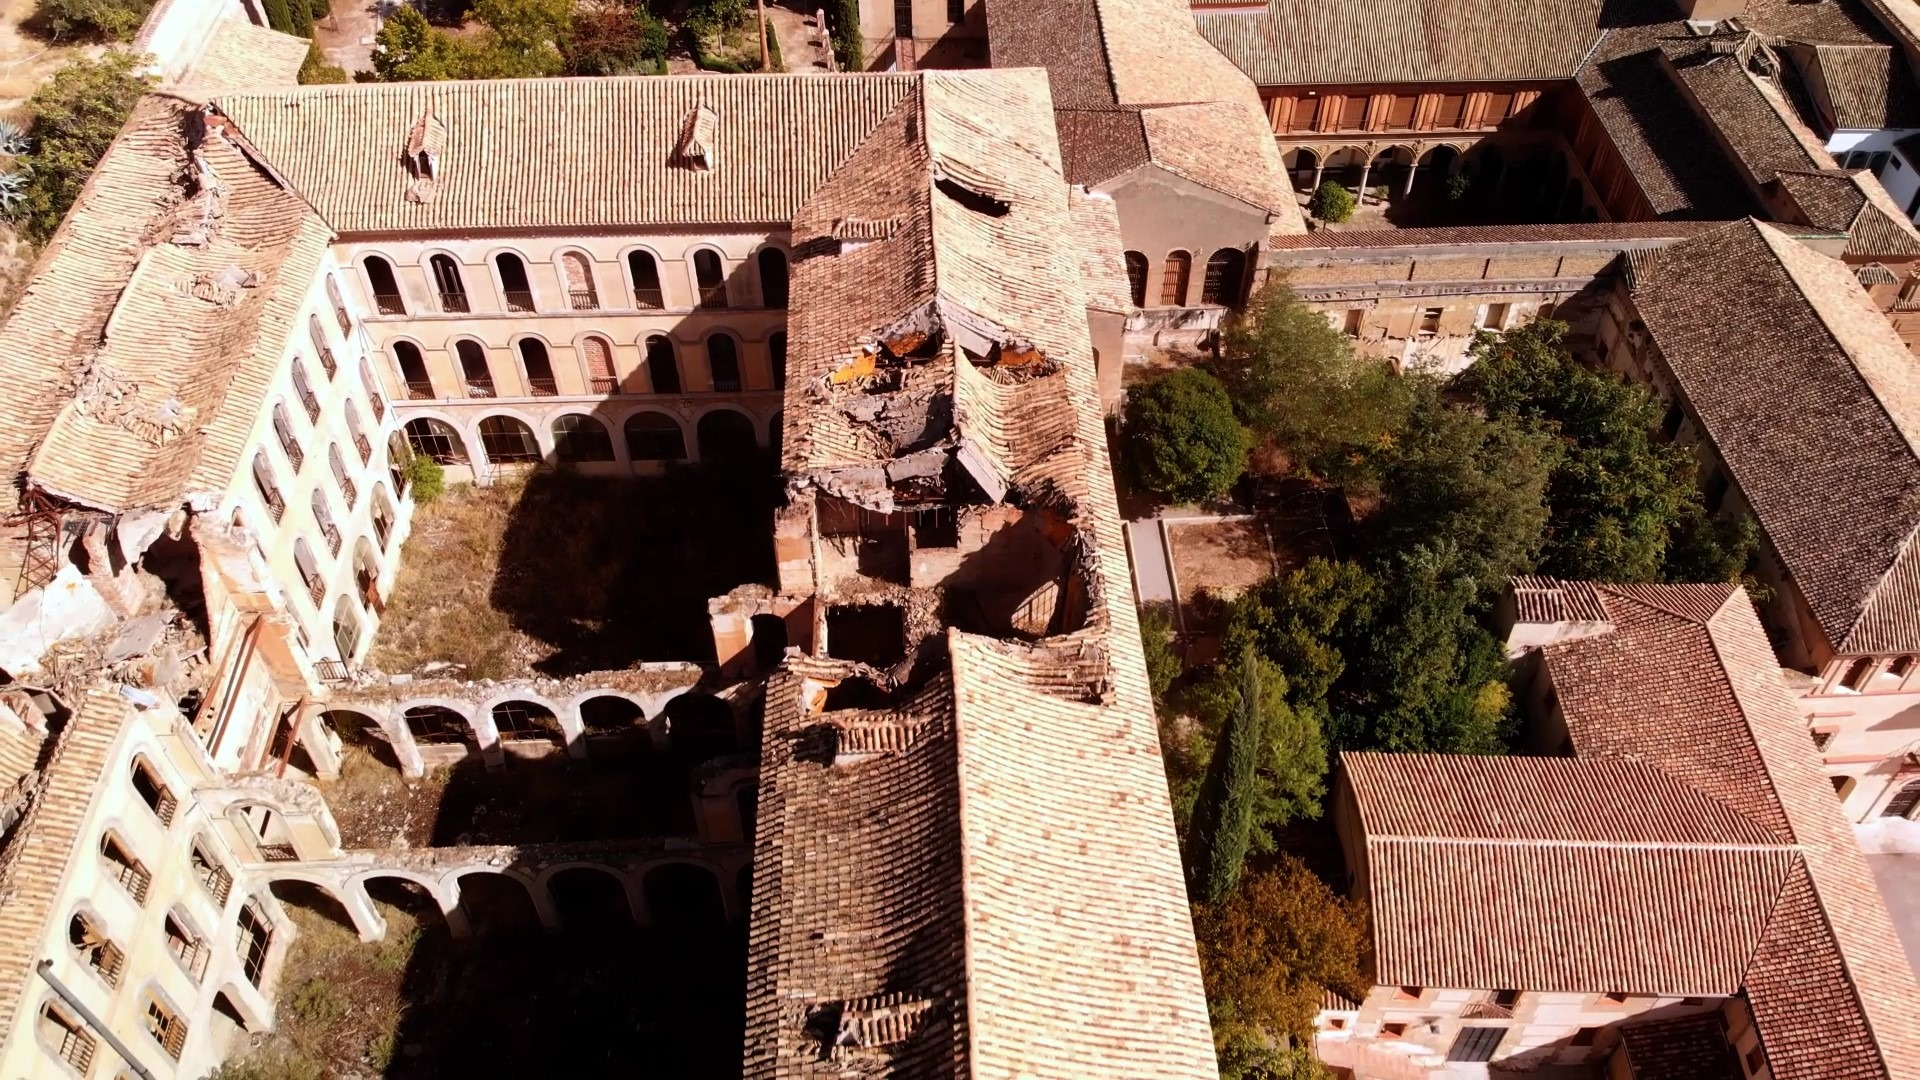 The destroyed part of the Sacromonte Abbey in Granada